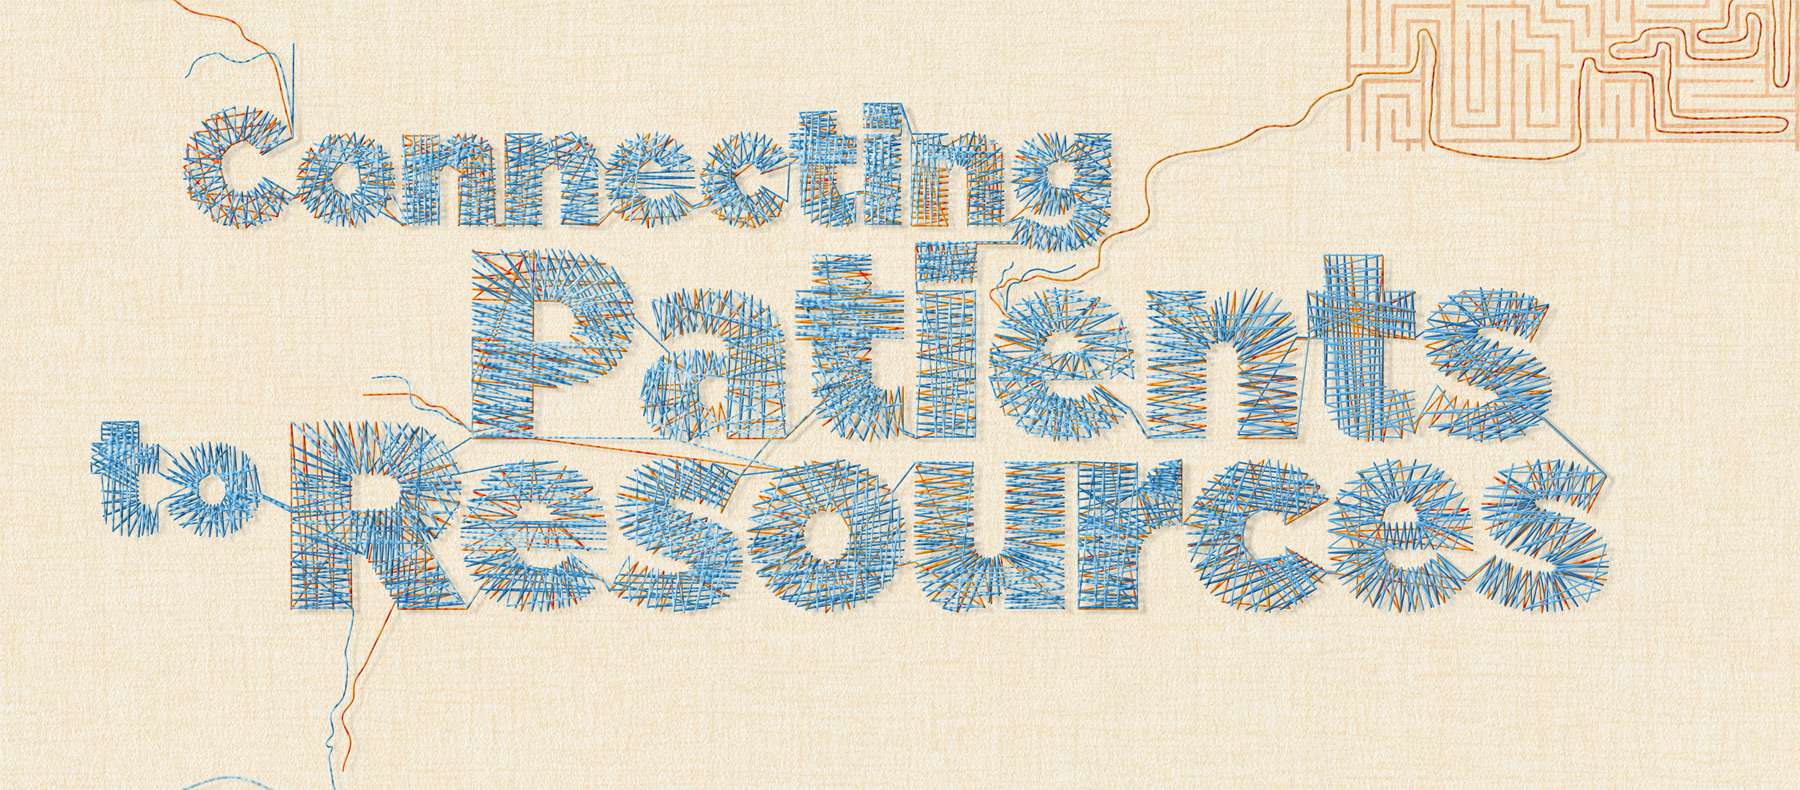 Connecting patients to resources